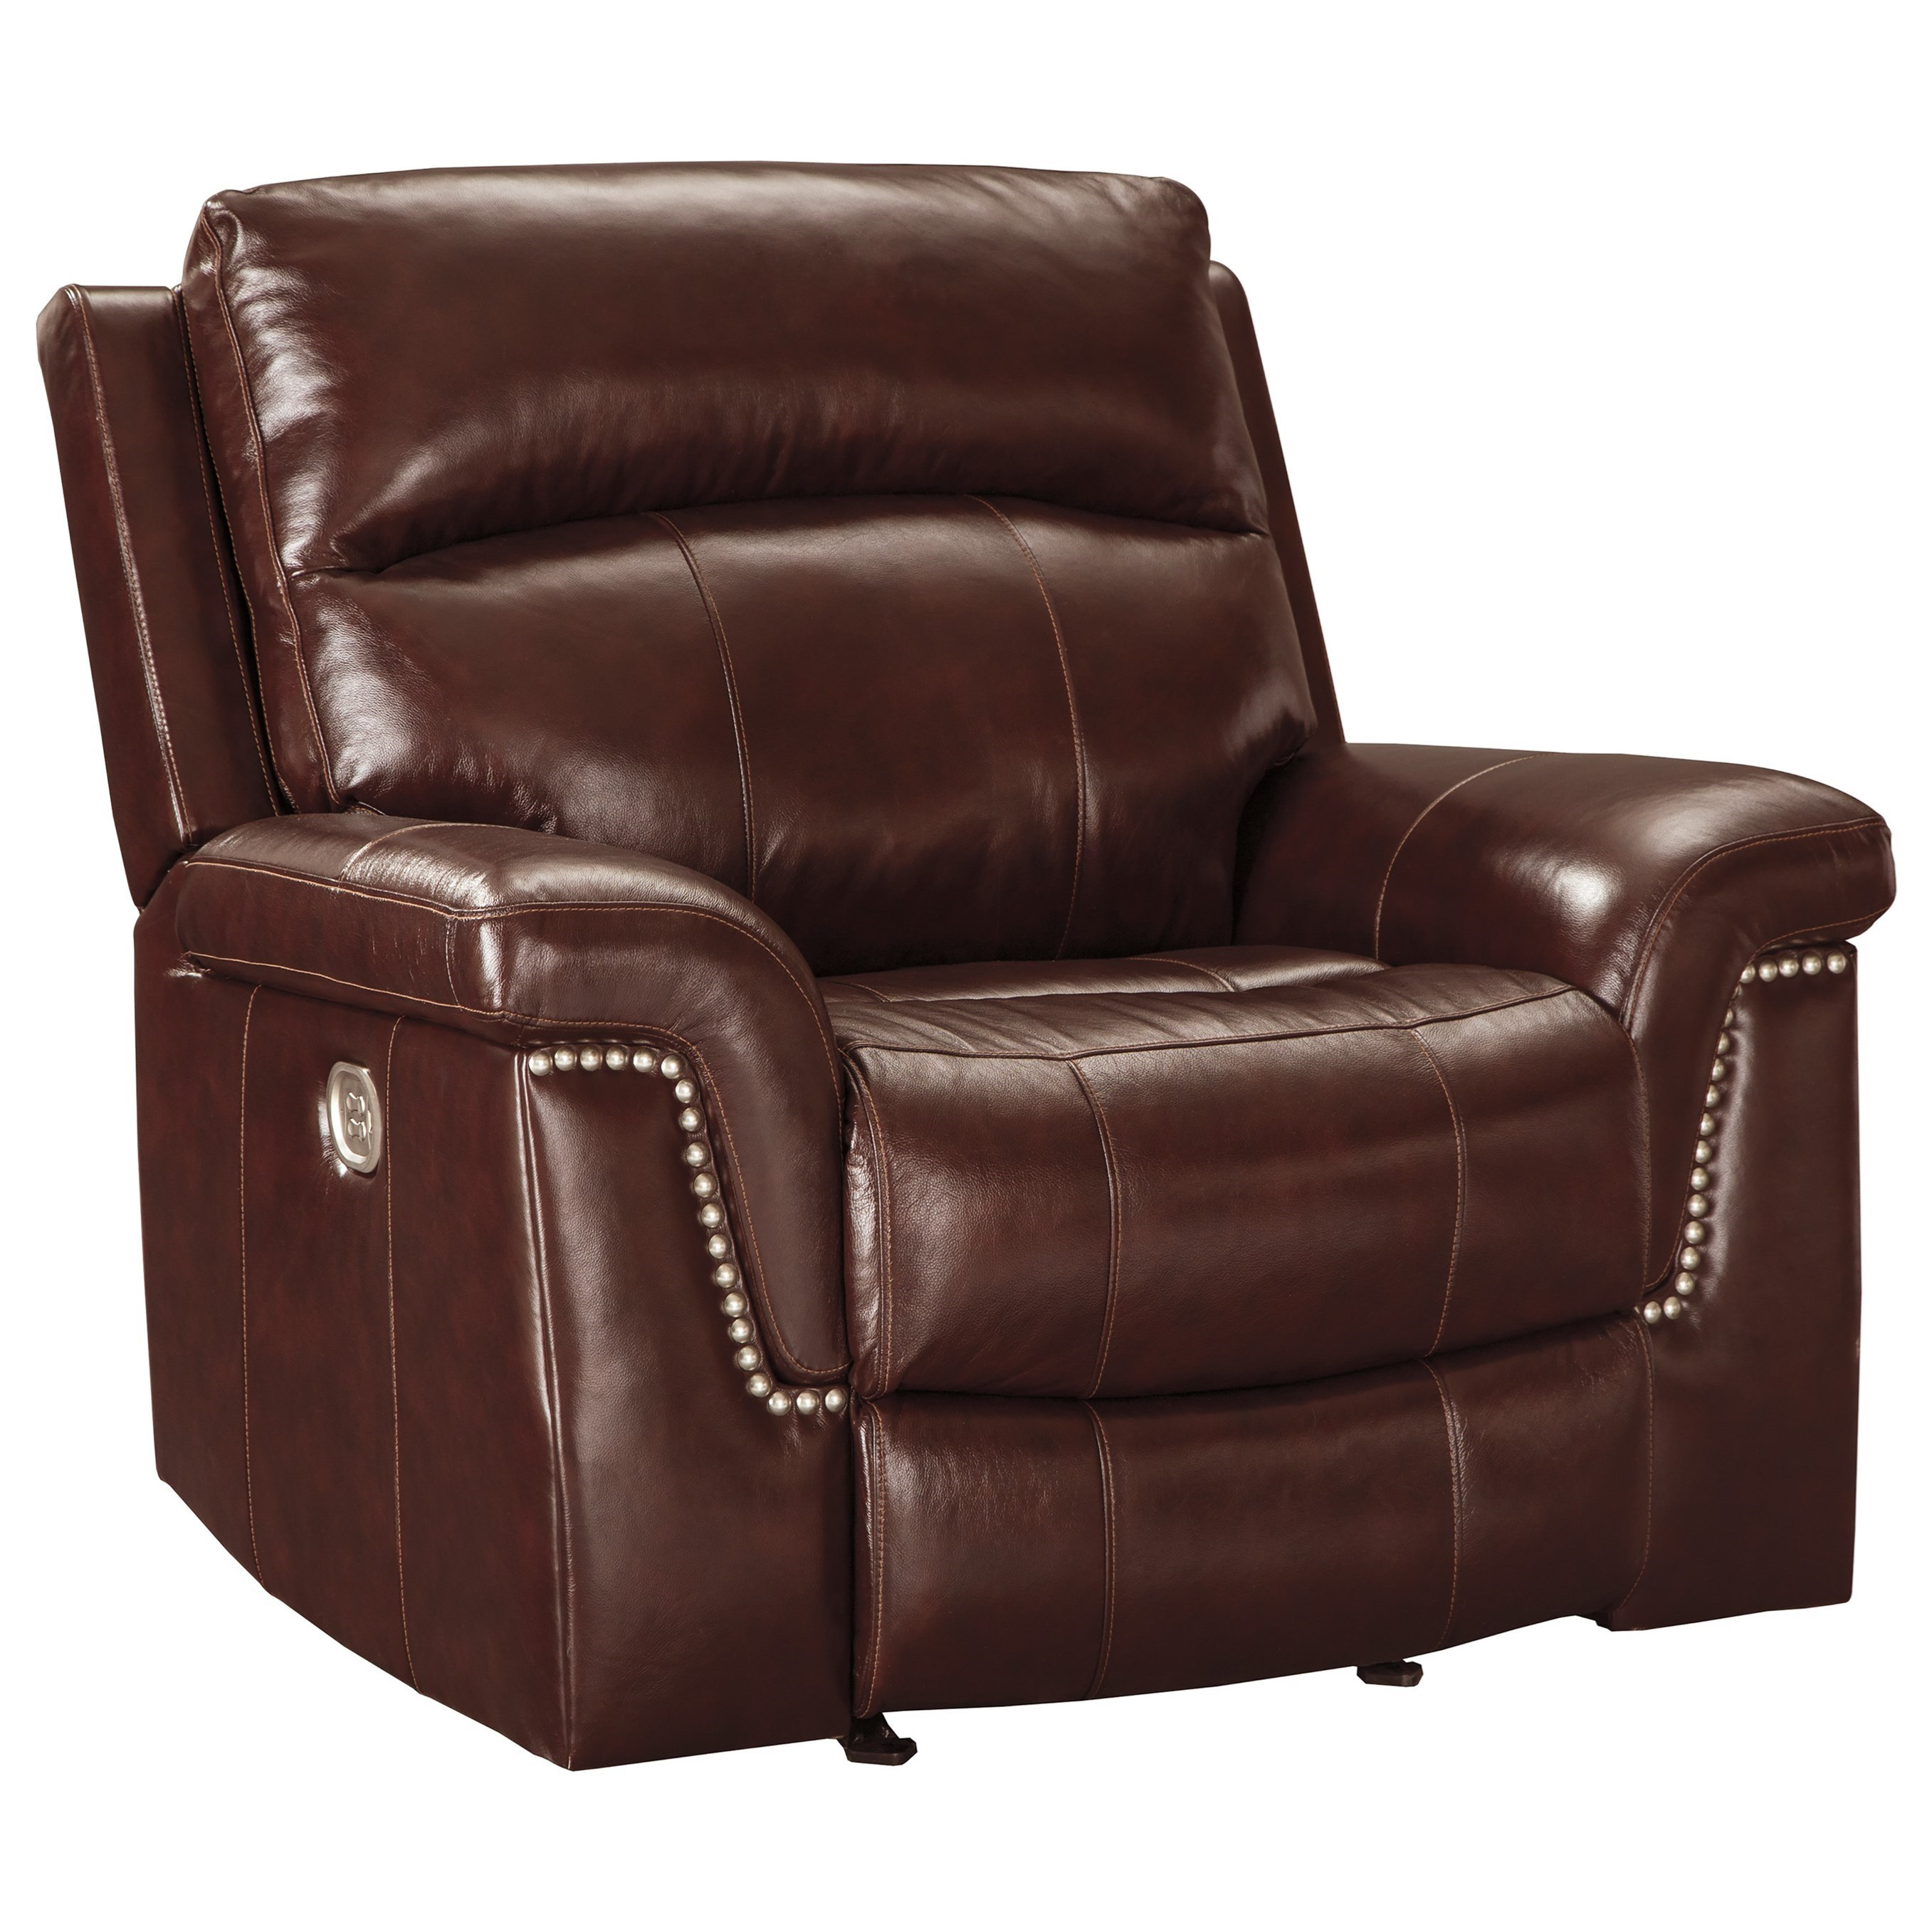 Signature Design by Ashley Timmons Power Recliner with Adjustable Headrest - Item Number: 7450113